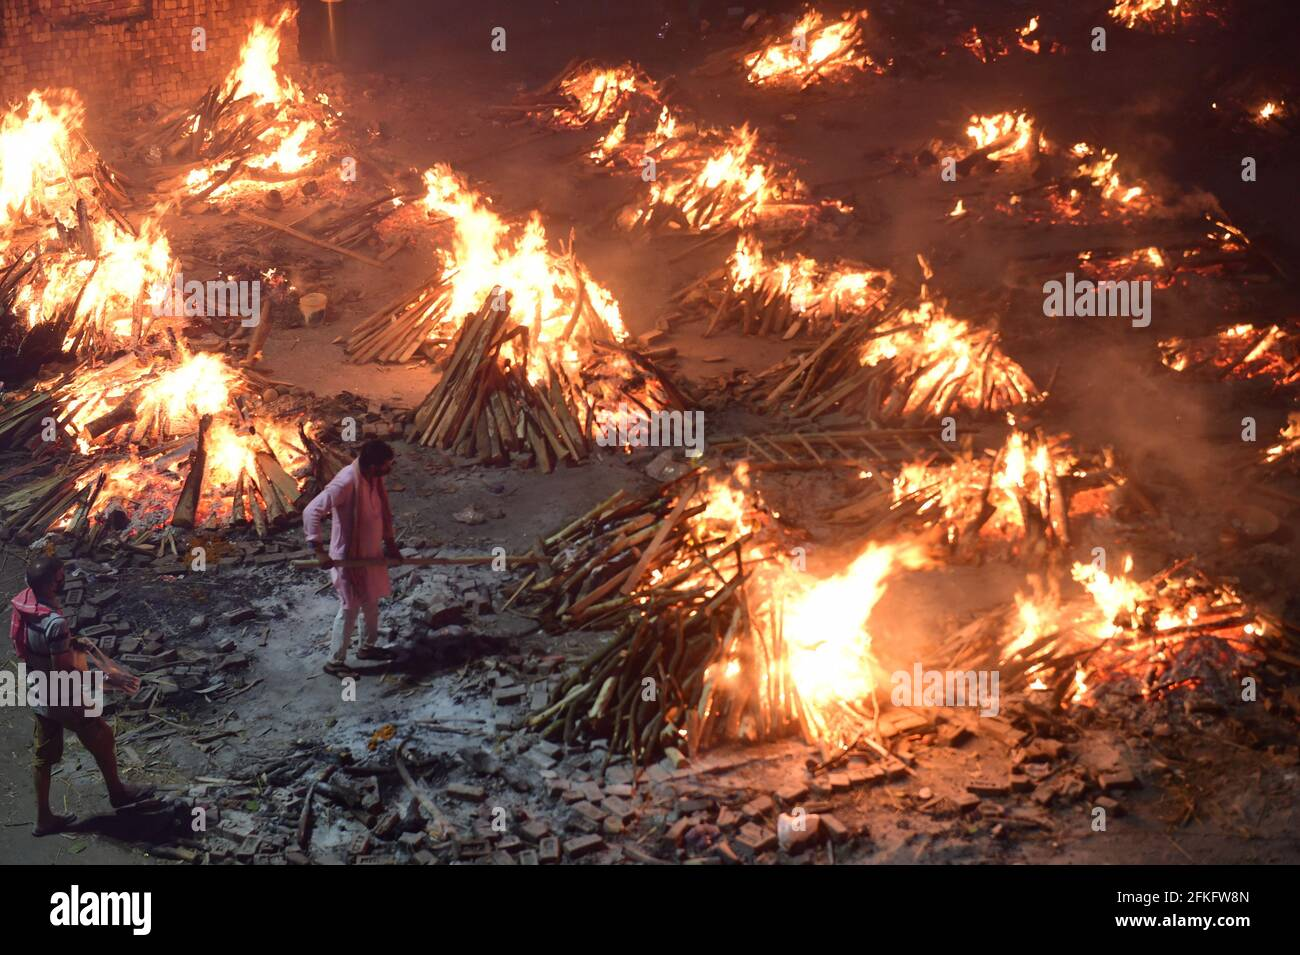 New Delhi, India. 01st May, 2021. Workers and family members bring bodies for cremation near multiple funeral pyres of victims of COVID-19 burn at a ground that has been converted into a crematorium for mass cremation in New Delhi, India on Saturday, May 1, 2021. Photo by Abhishek/UPI Credit: UPI/Alamy Live News Stock Photo